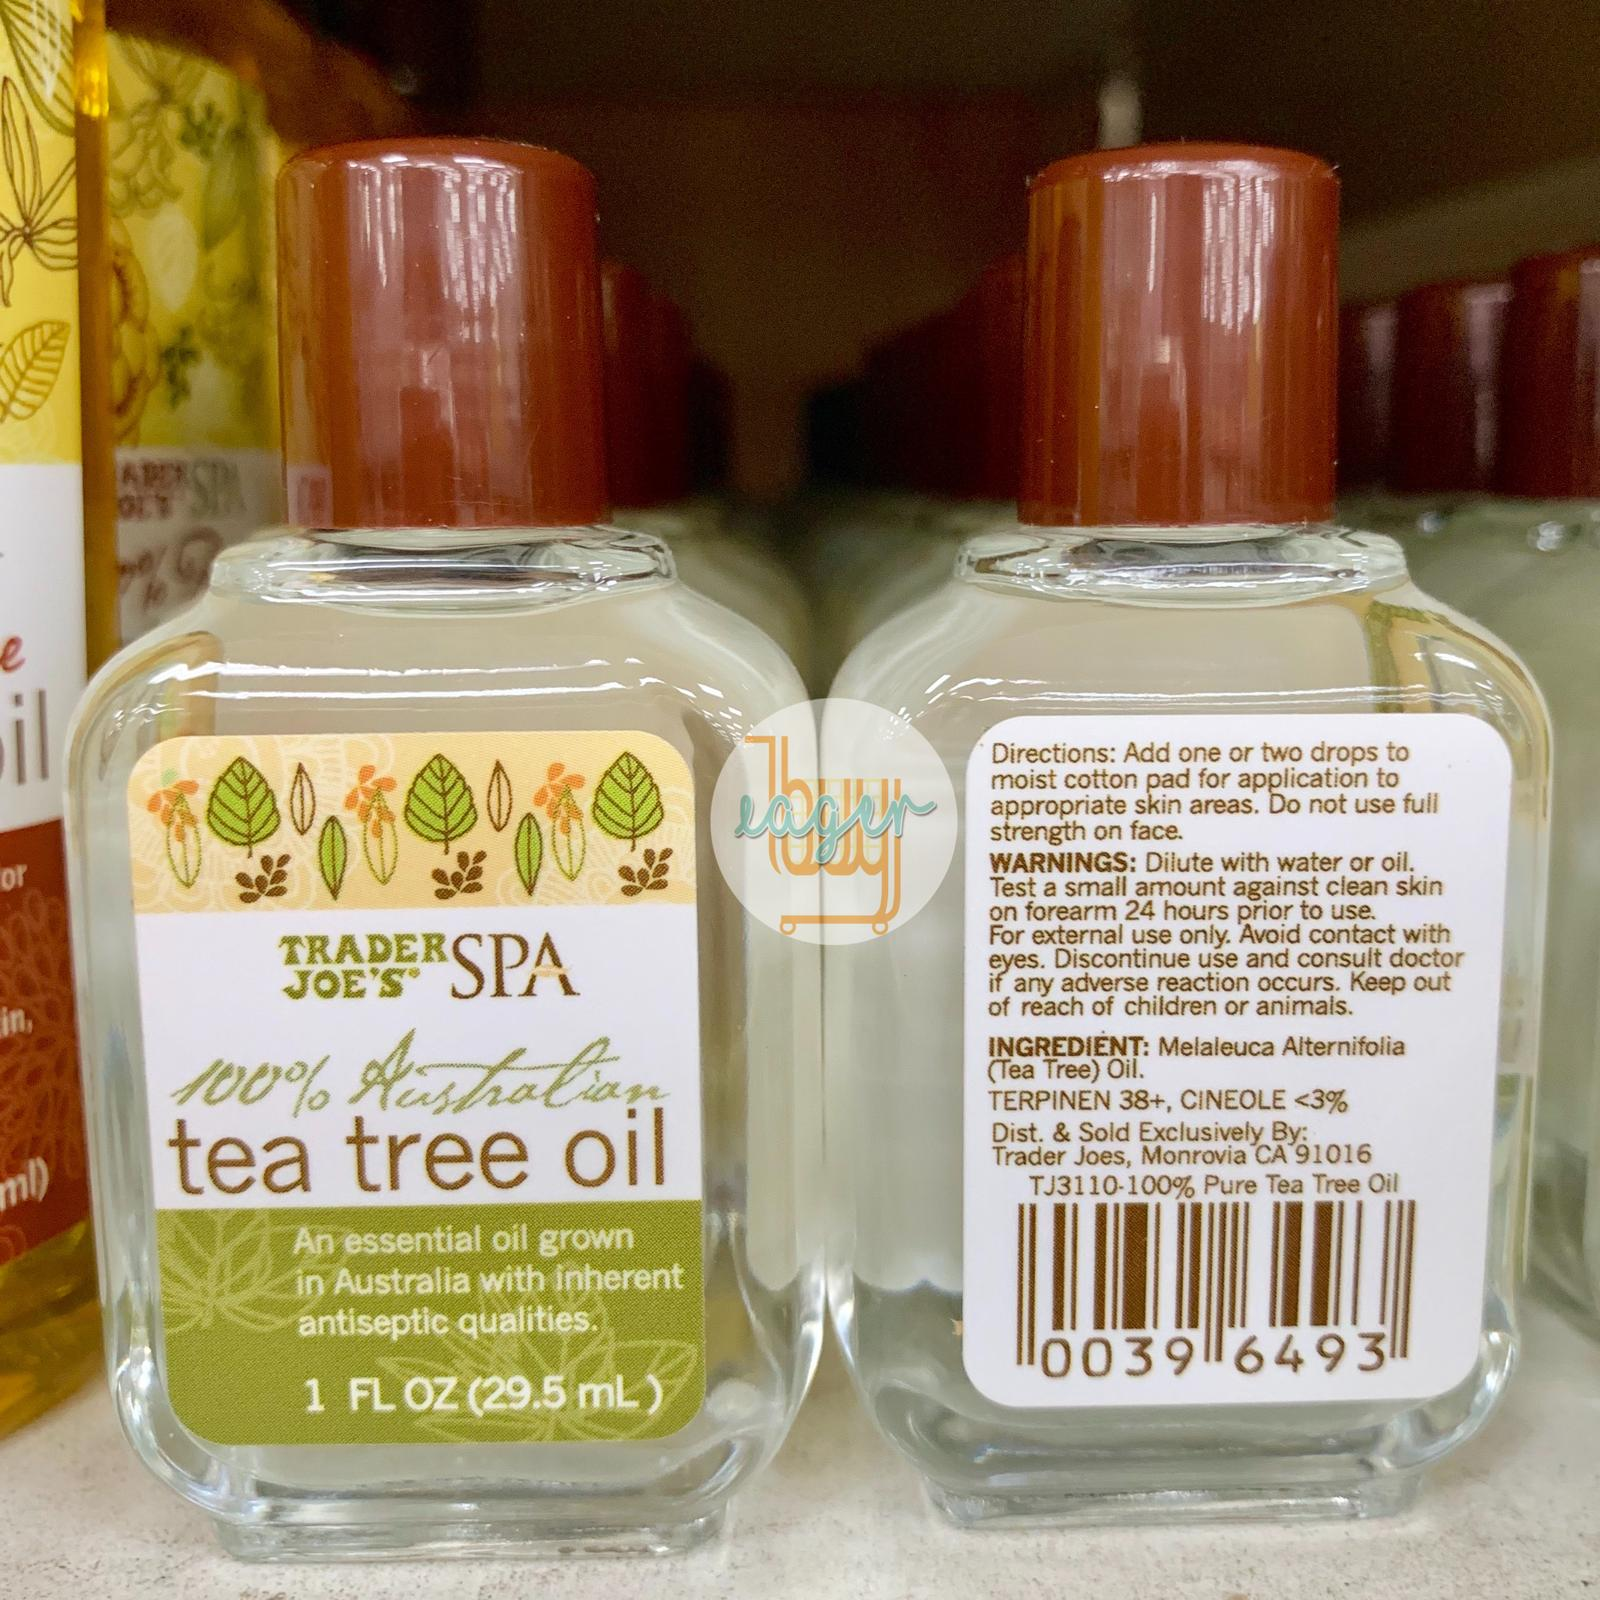 TRADER JOE'S - Spa 100% Australian Tea Tree Oil